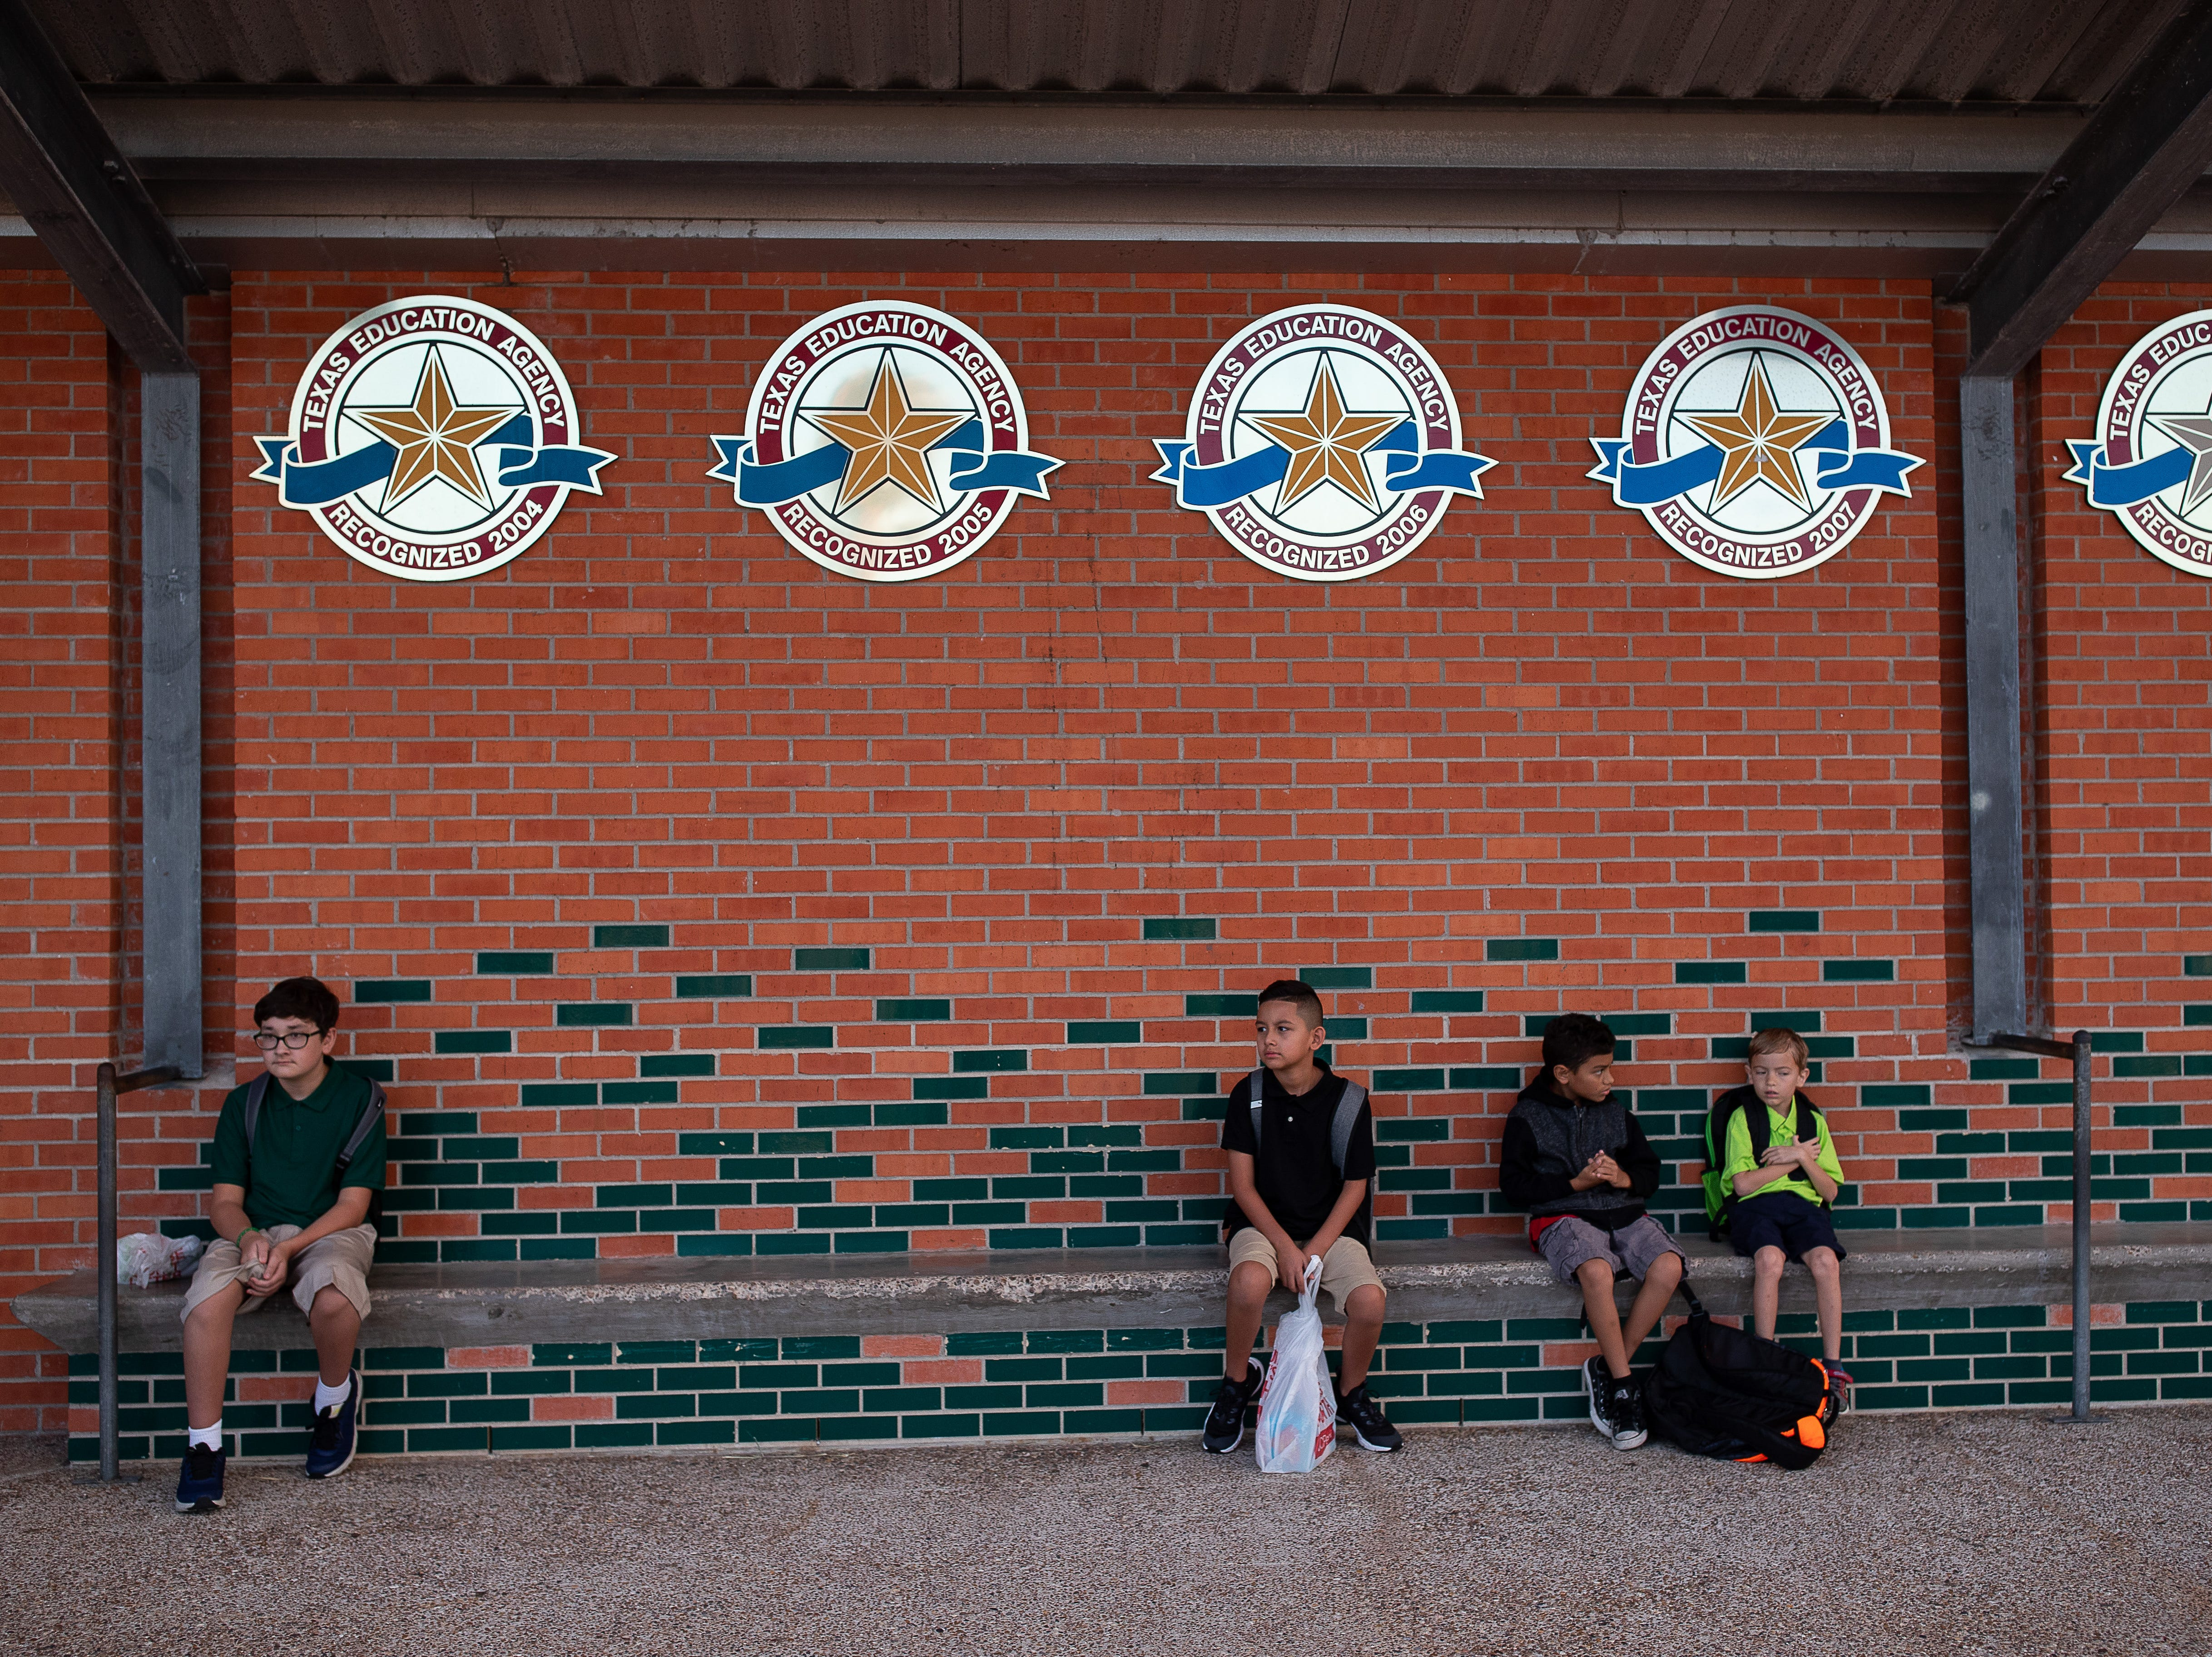 Students wait outside Dawson Elementary on the first day of school, Monday, Aug. 27, 2018.